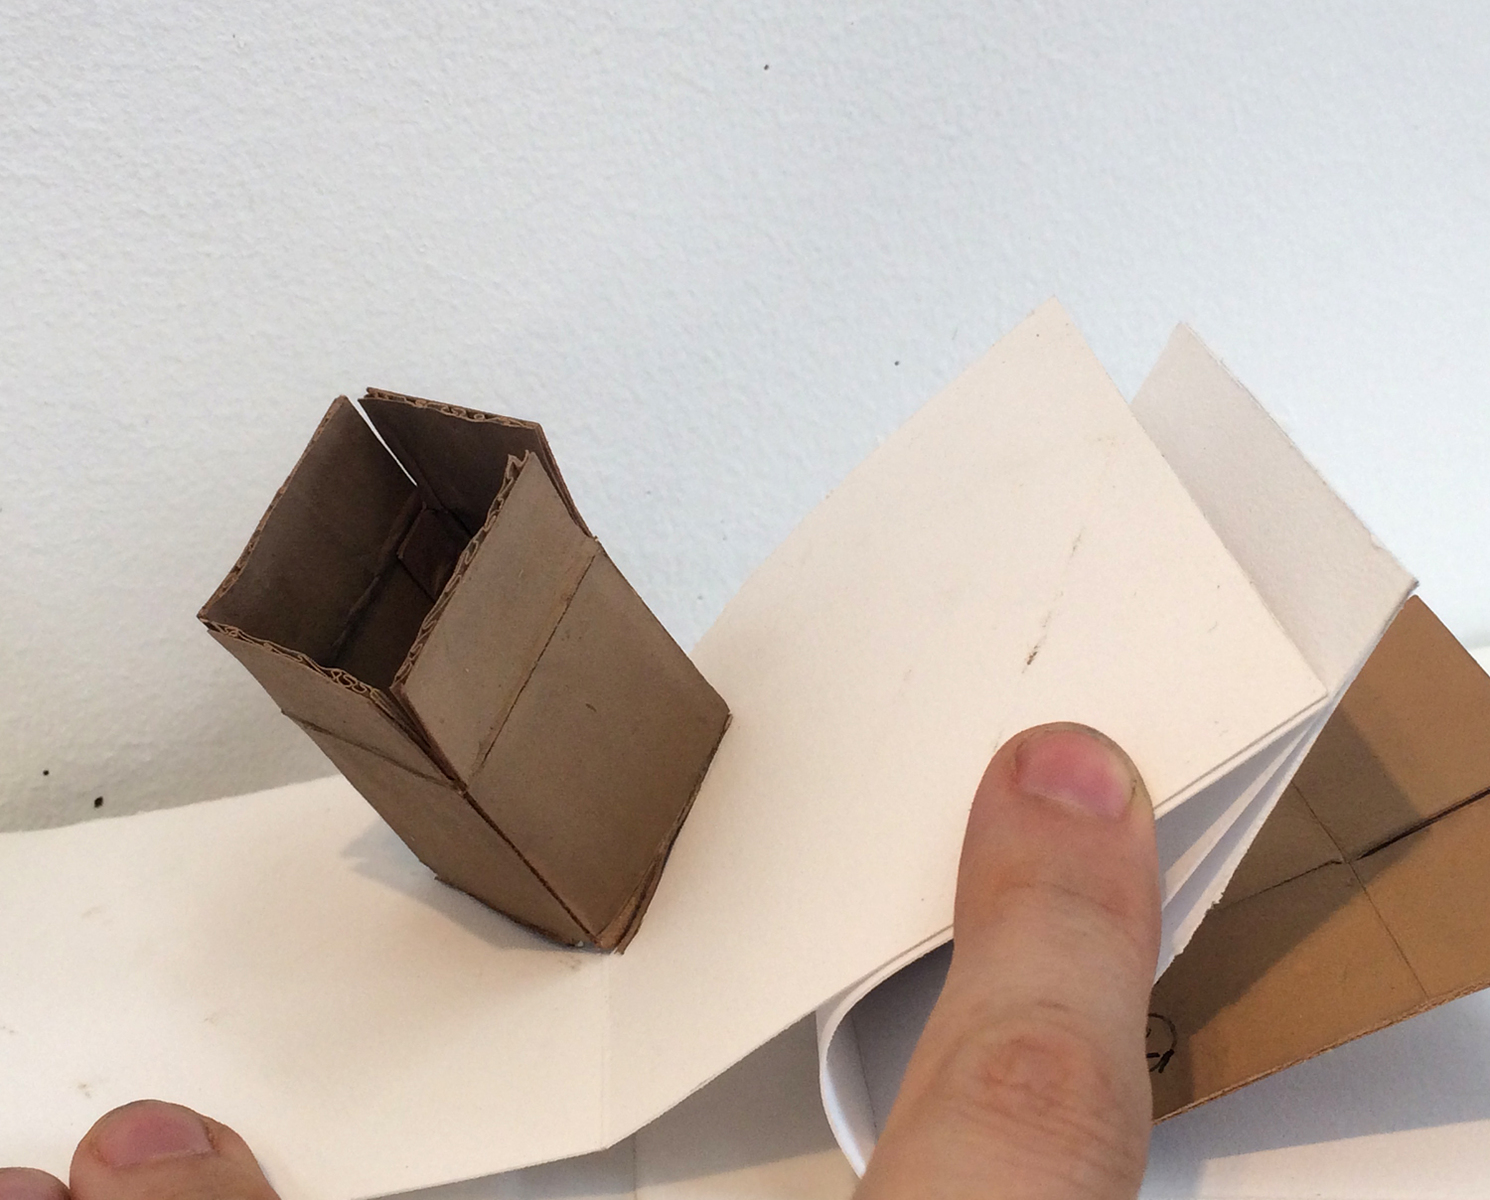 piles, boxes and other containers Boxes (Pop-up book detail)